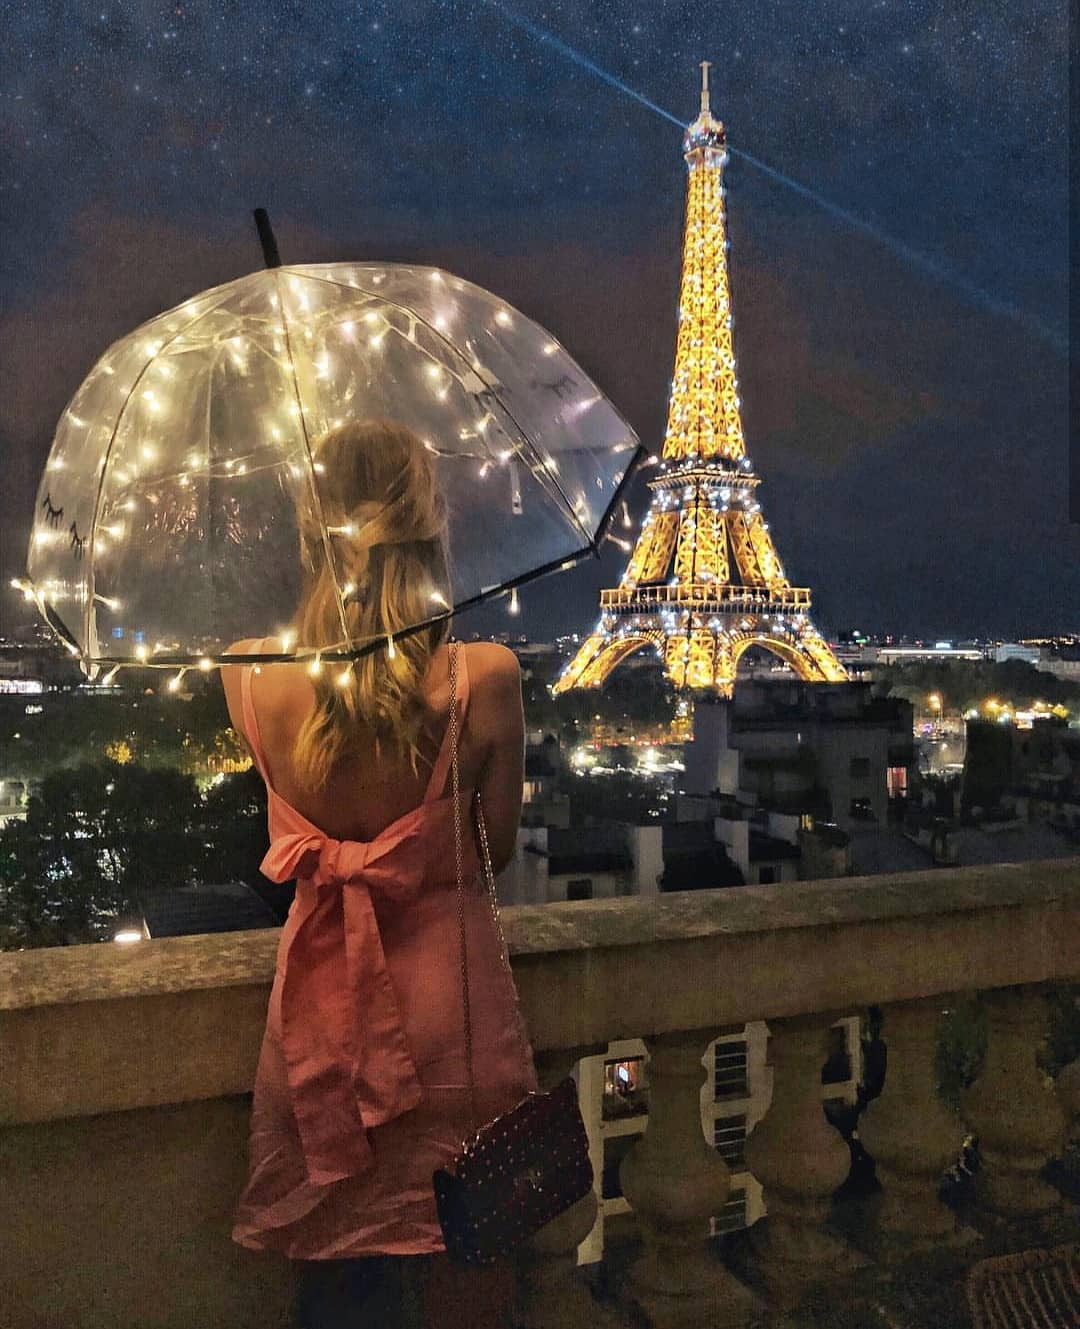 Pink Dress With Open Back And Tie Knot For Summer In Paris 2020